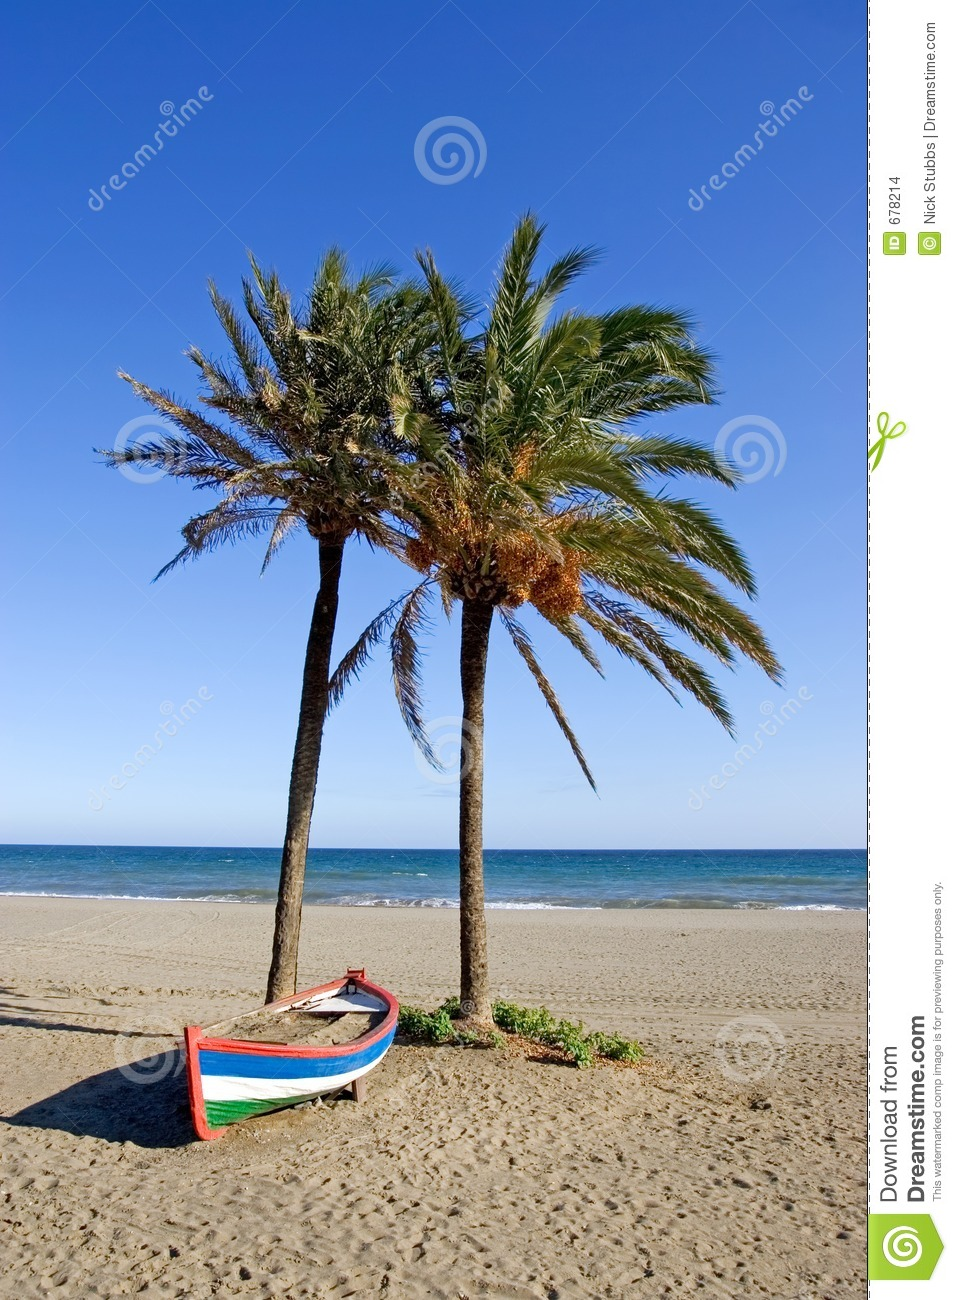 palm trees boat - photo #48